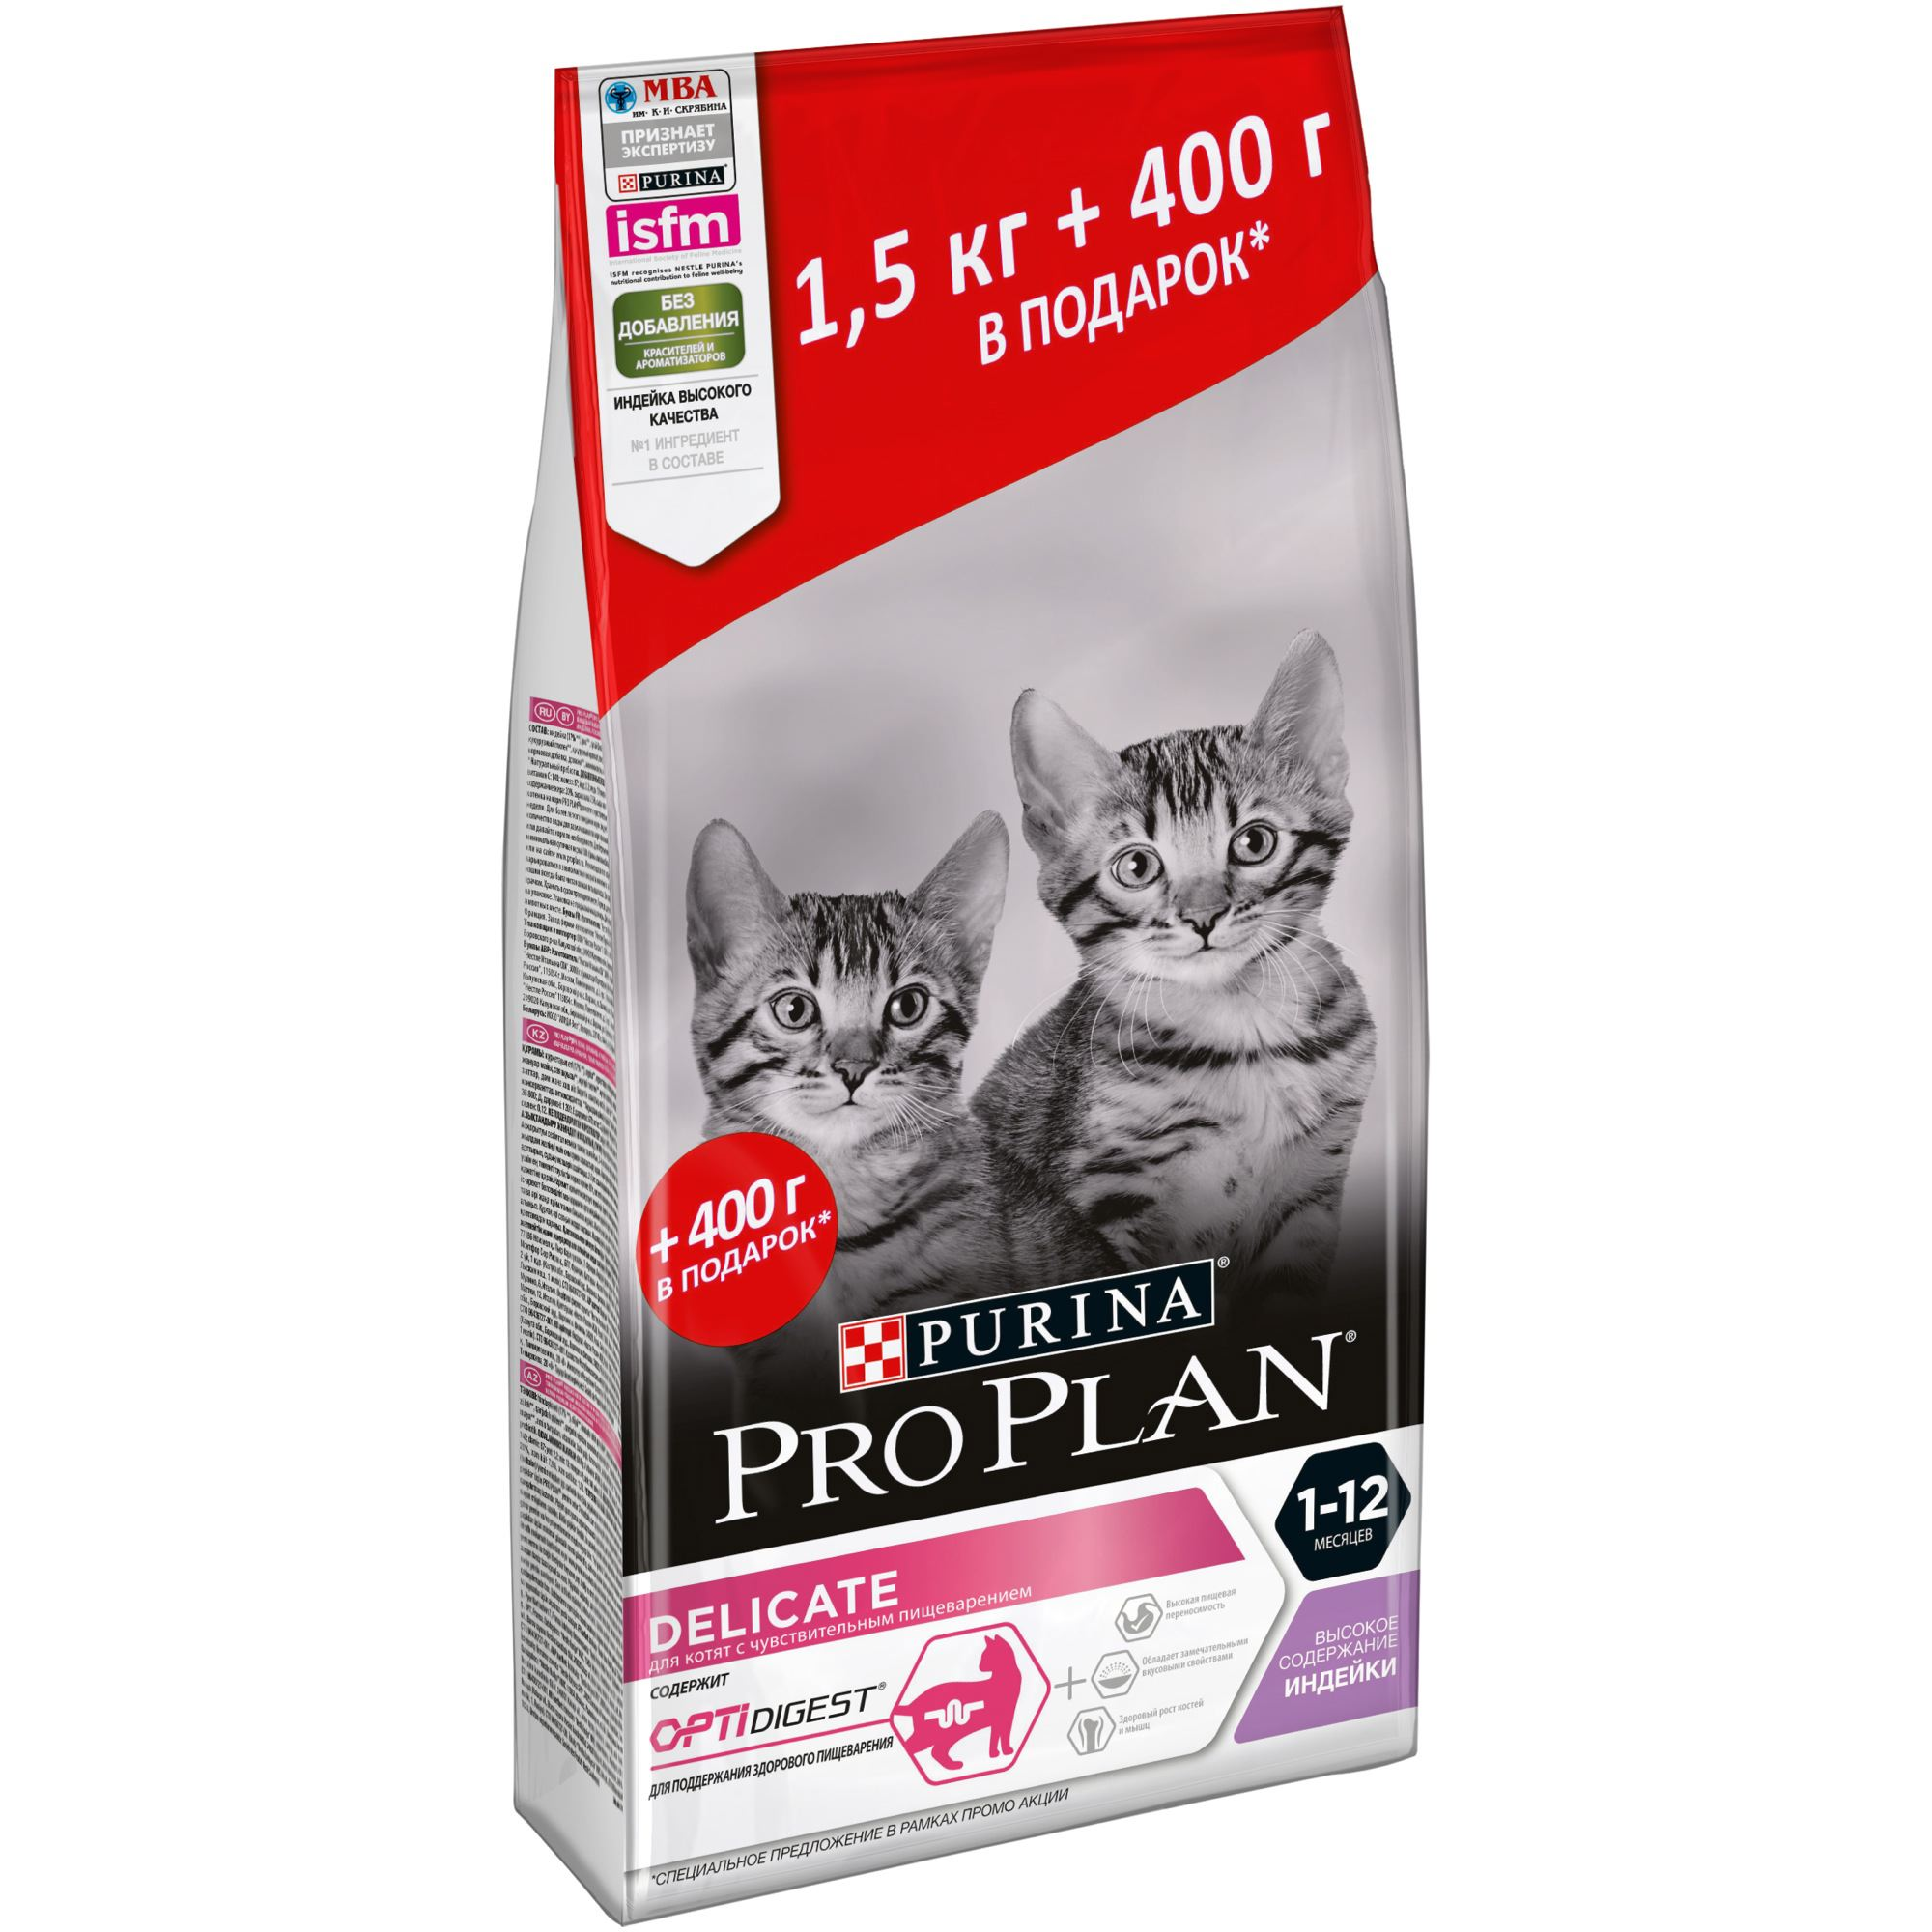 dry pro plan food for cats with sensitive digestion and fastidious for eating with turkey 10 kg Promopak: Pro Plan dry food for kittens with sensitive digestion or with special eating habits, with turkey, 1.5 kg + 400 g